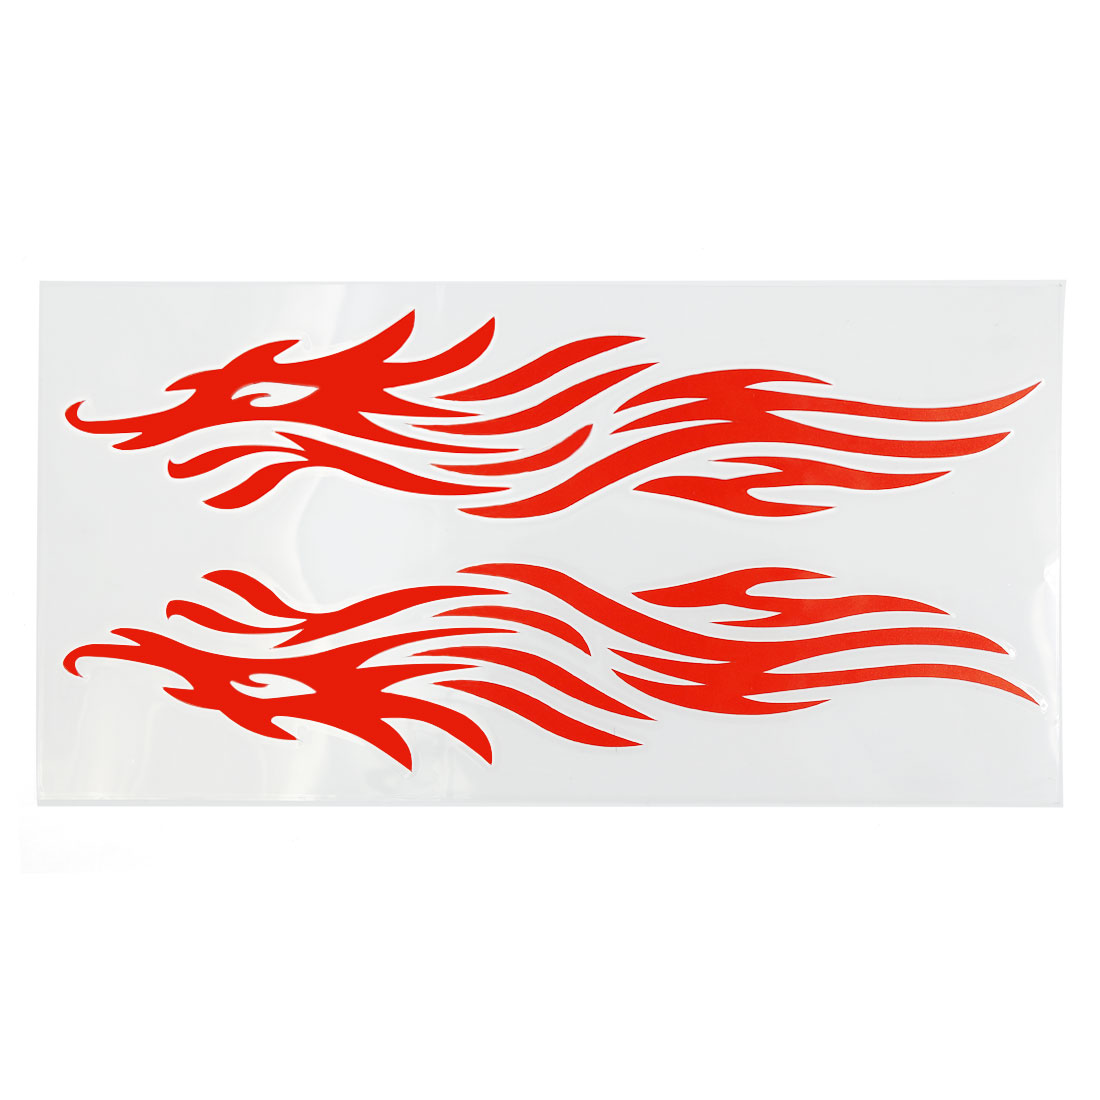 Red Fire Frame Pattern Reflective Motorcycle Auto Truck Car Glass Sticker Decal